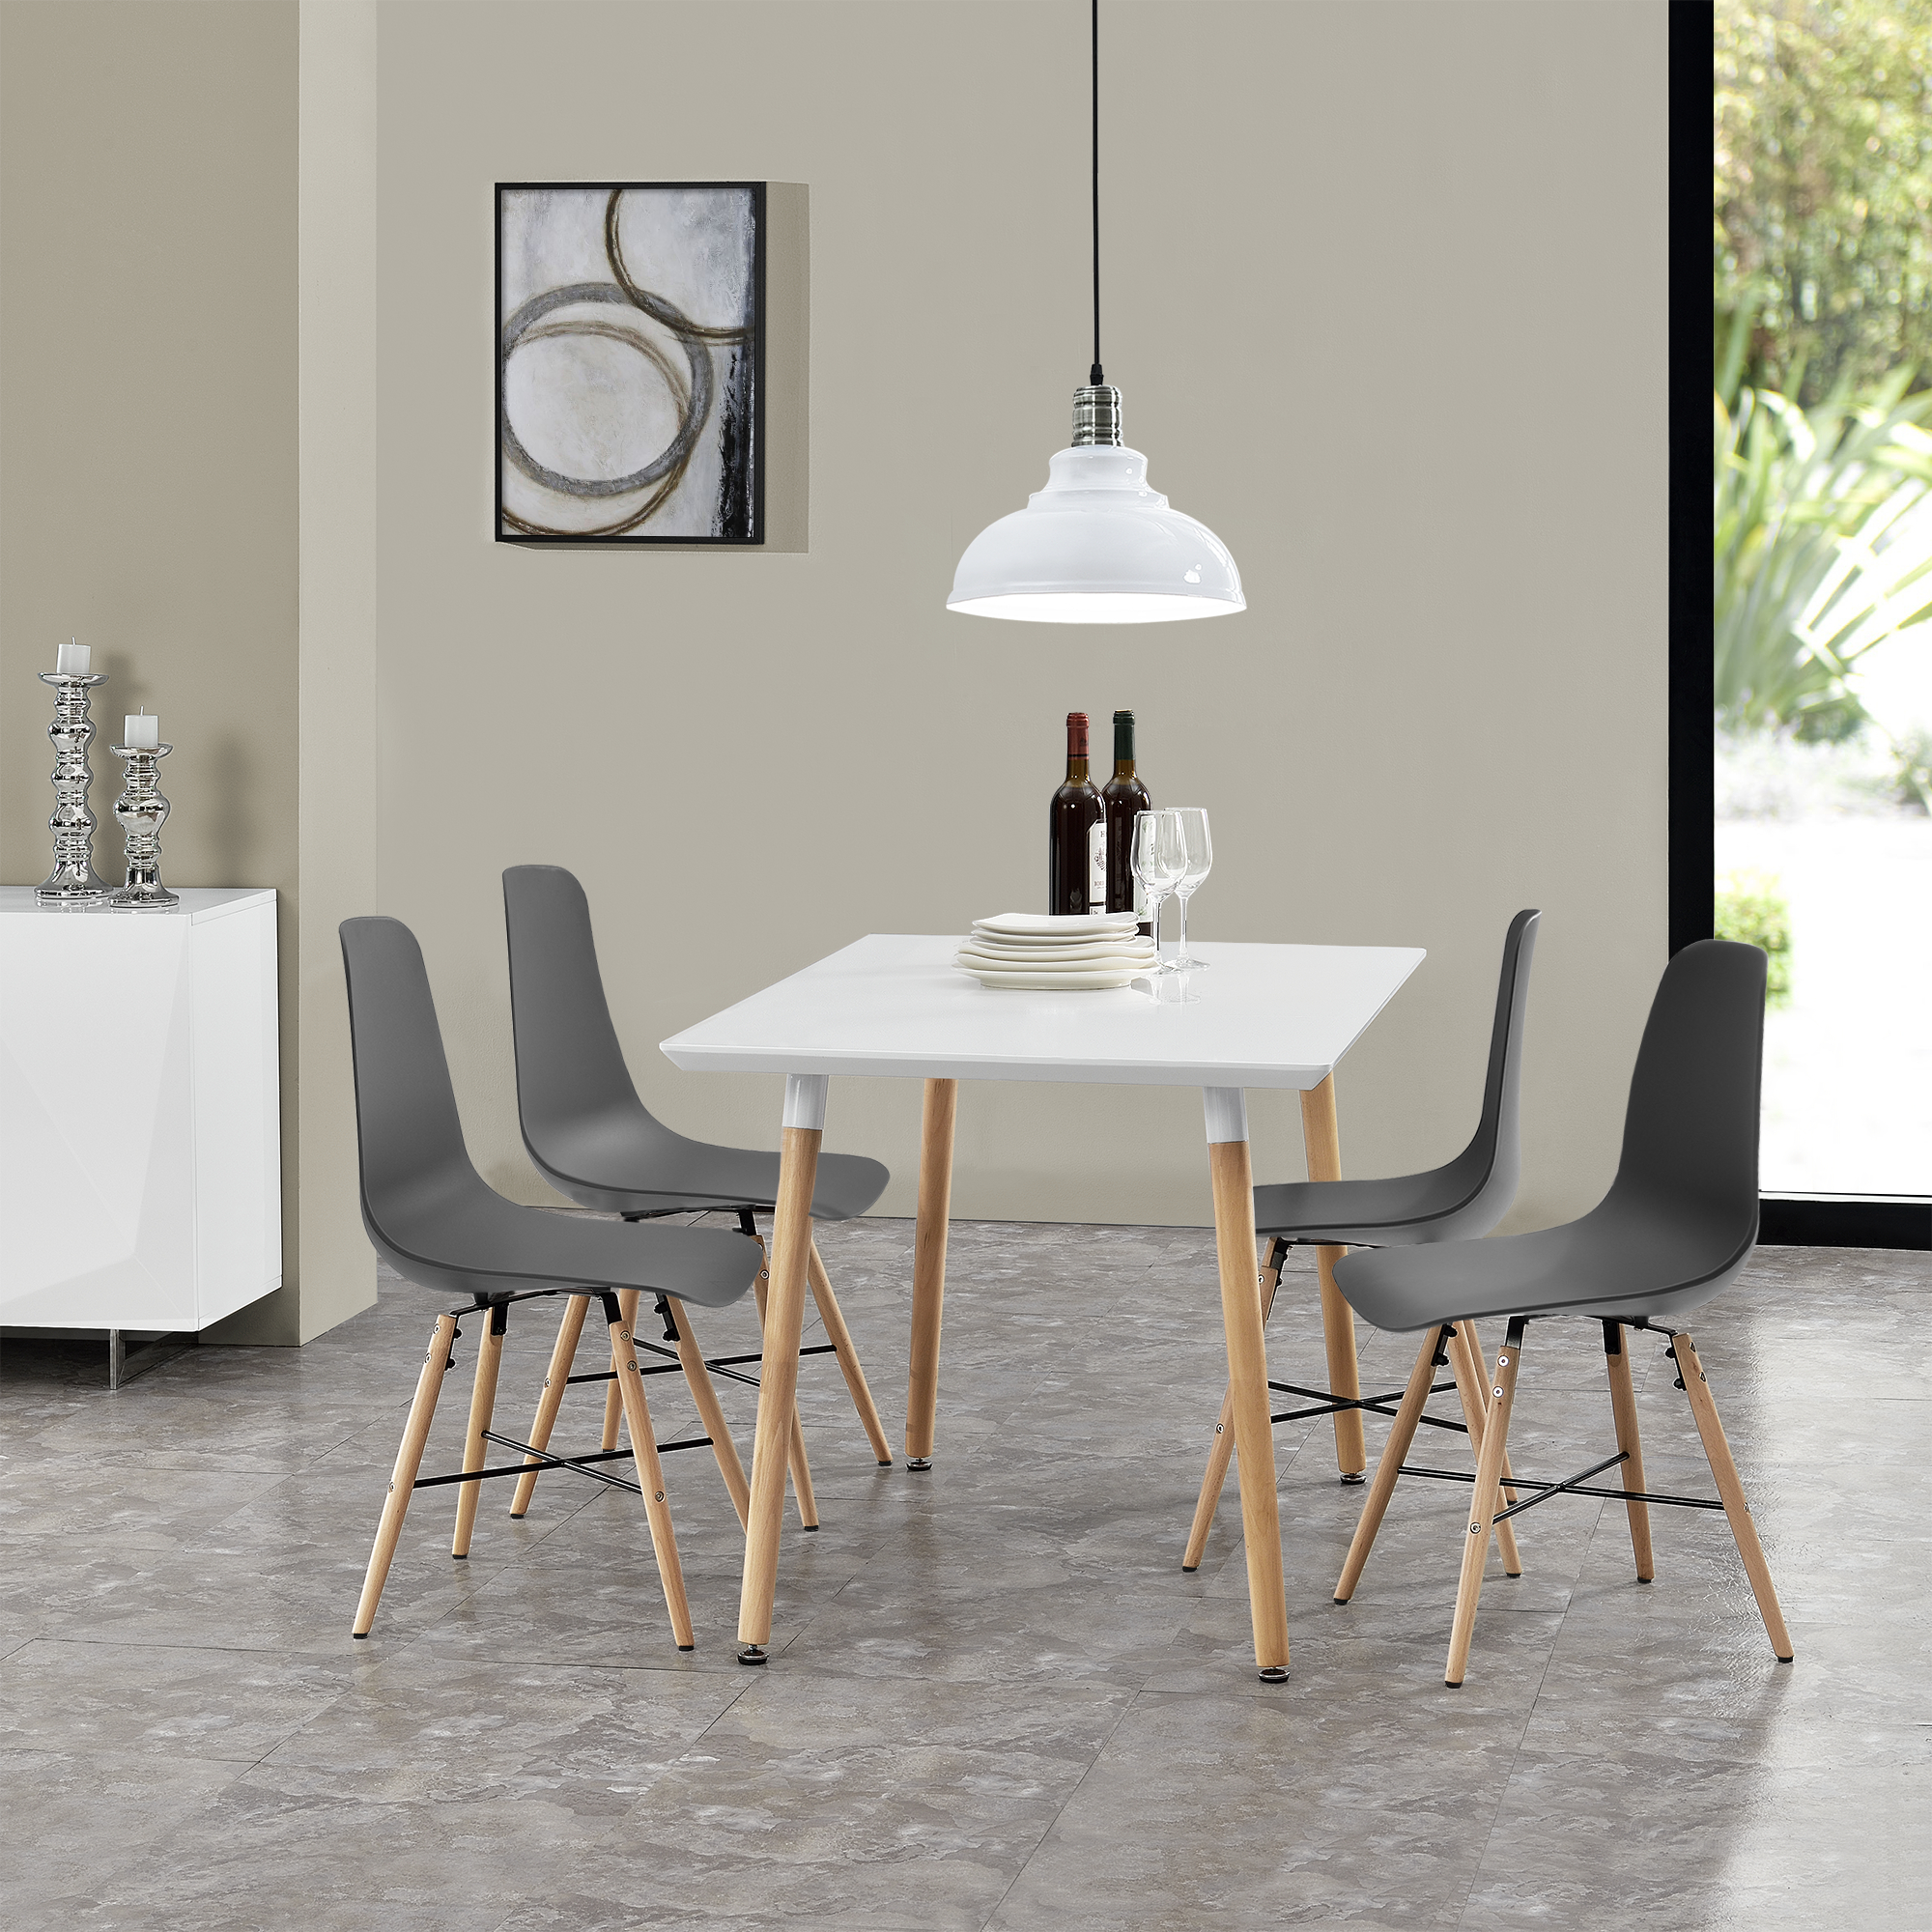 living room with dining table dining table with 4 chairs white grey 120x70cm kitchen 21680